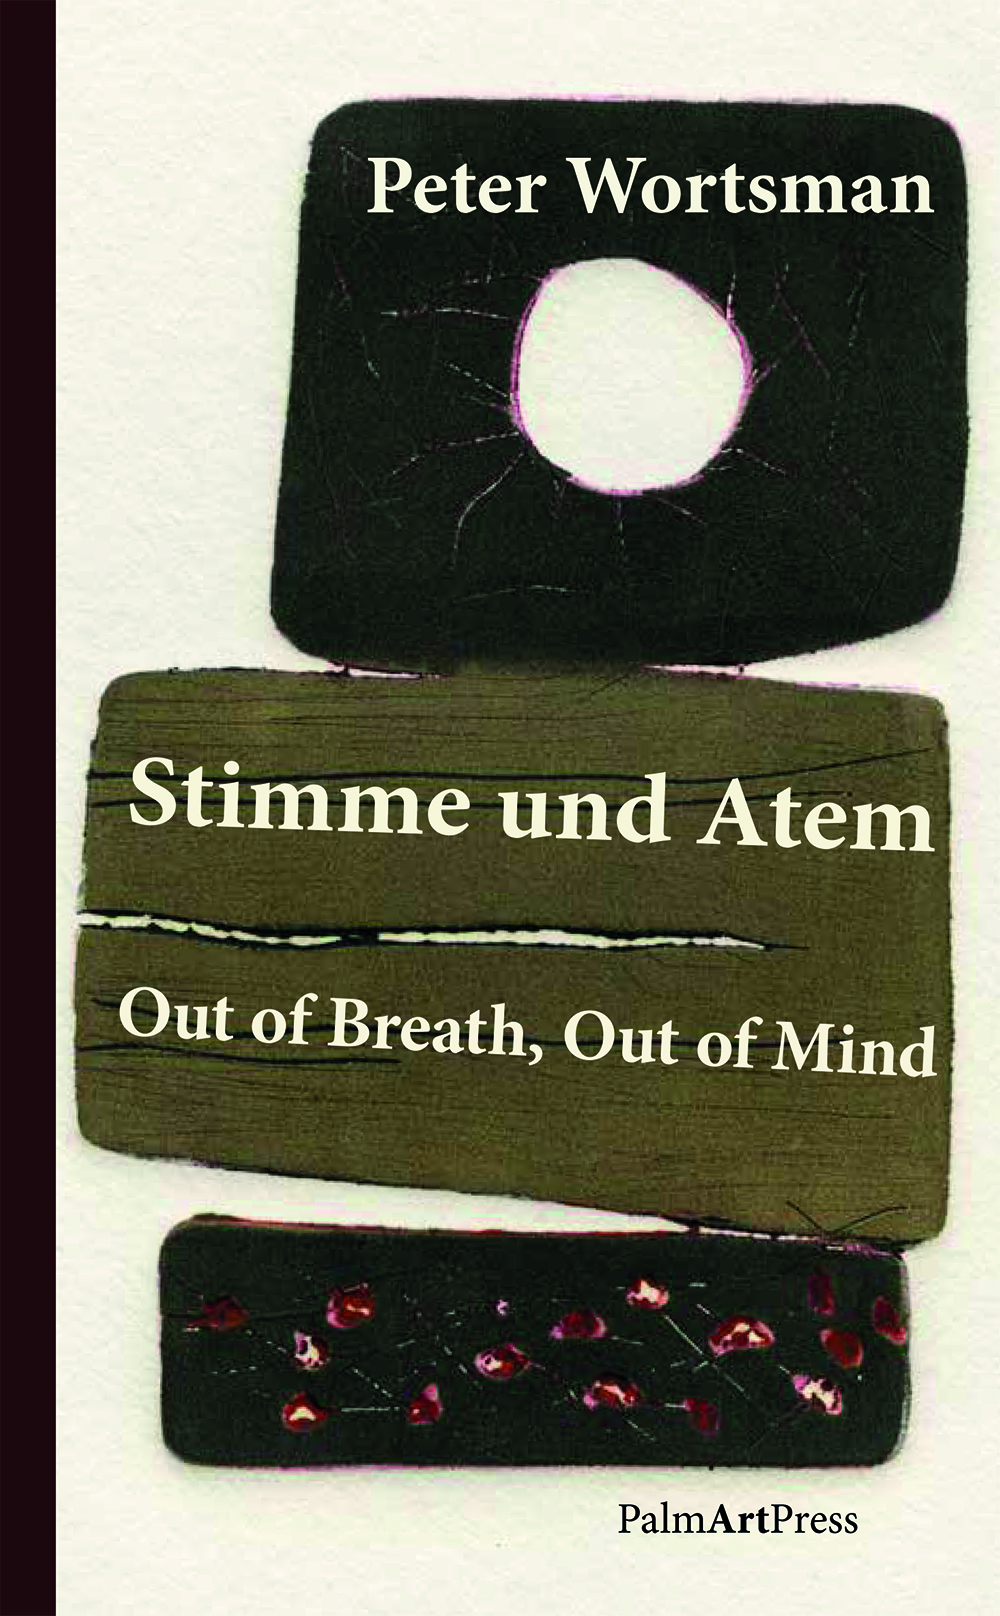 Stimme und Atem/Out of Breath, Out of Mind (Zweisprachige Erzählungen/Two-Tongued Tales)